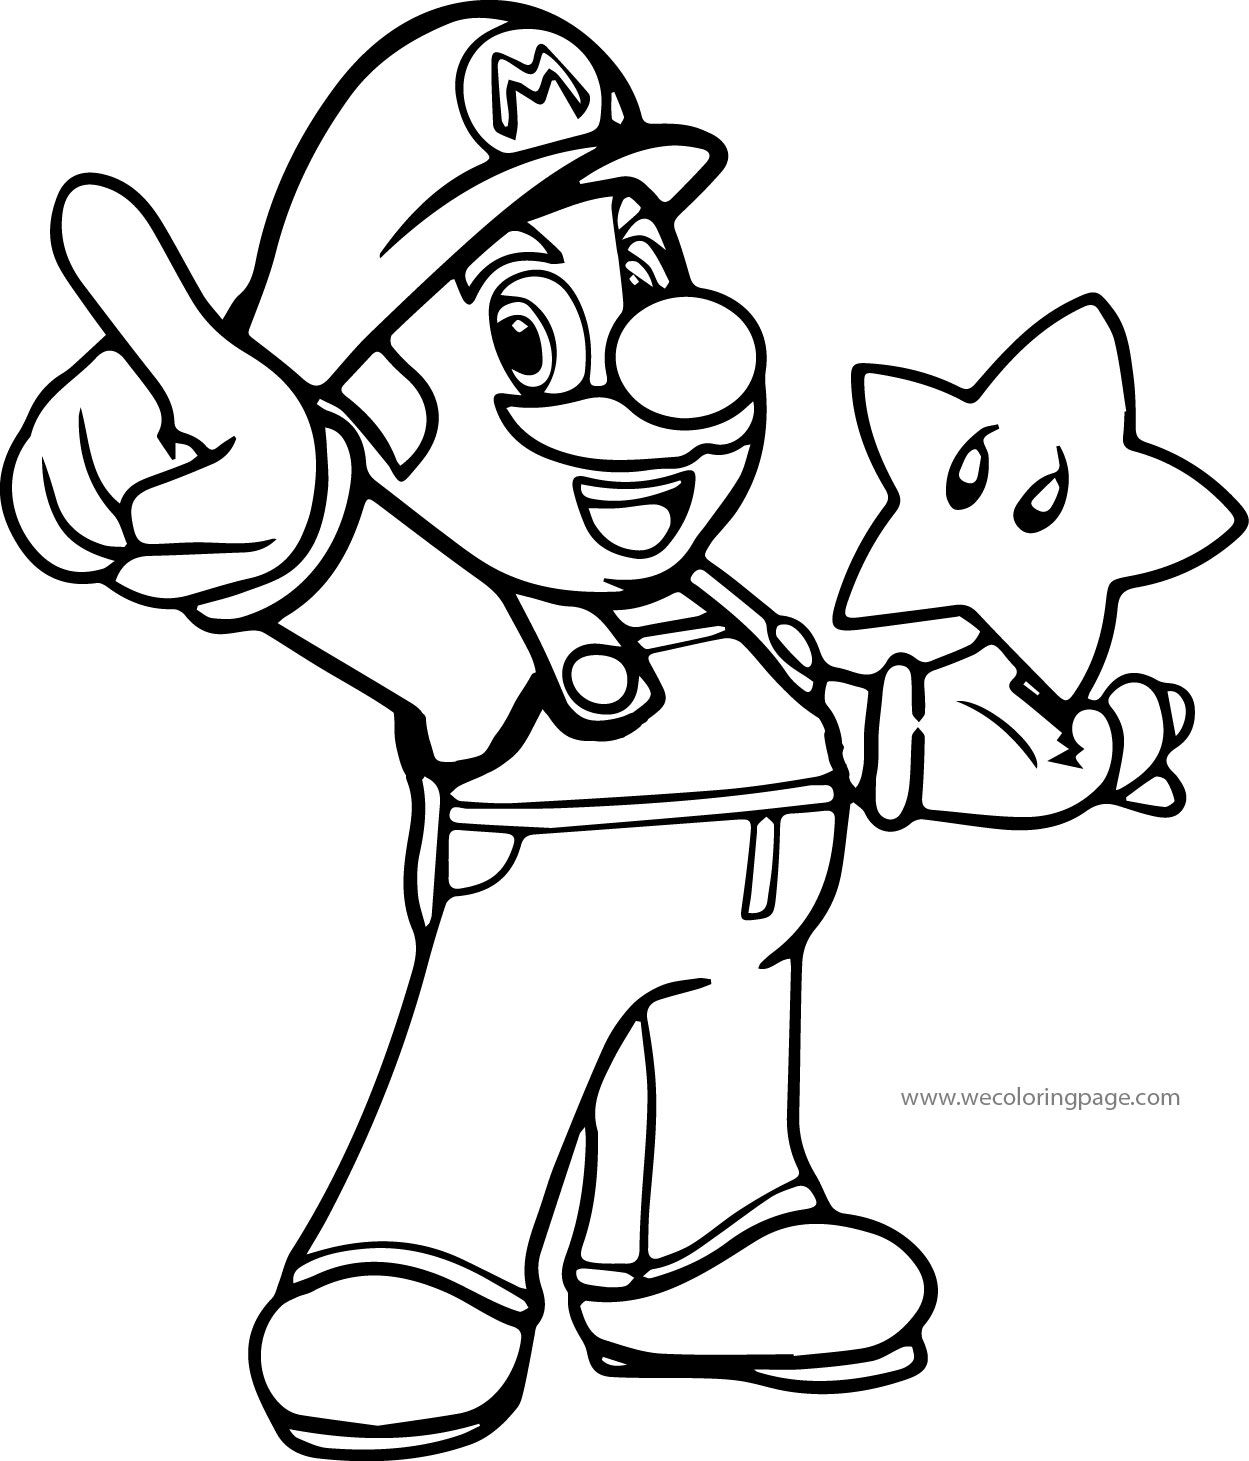 Mario Coloring Pages To Print Coloring Pages Mario Bros Coloring Pages Super Book Print Scan